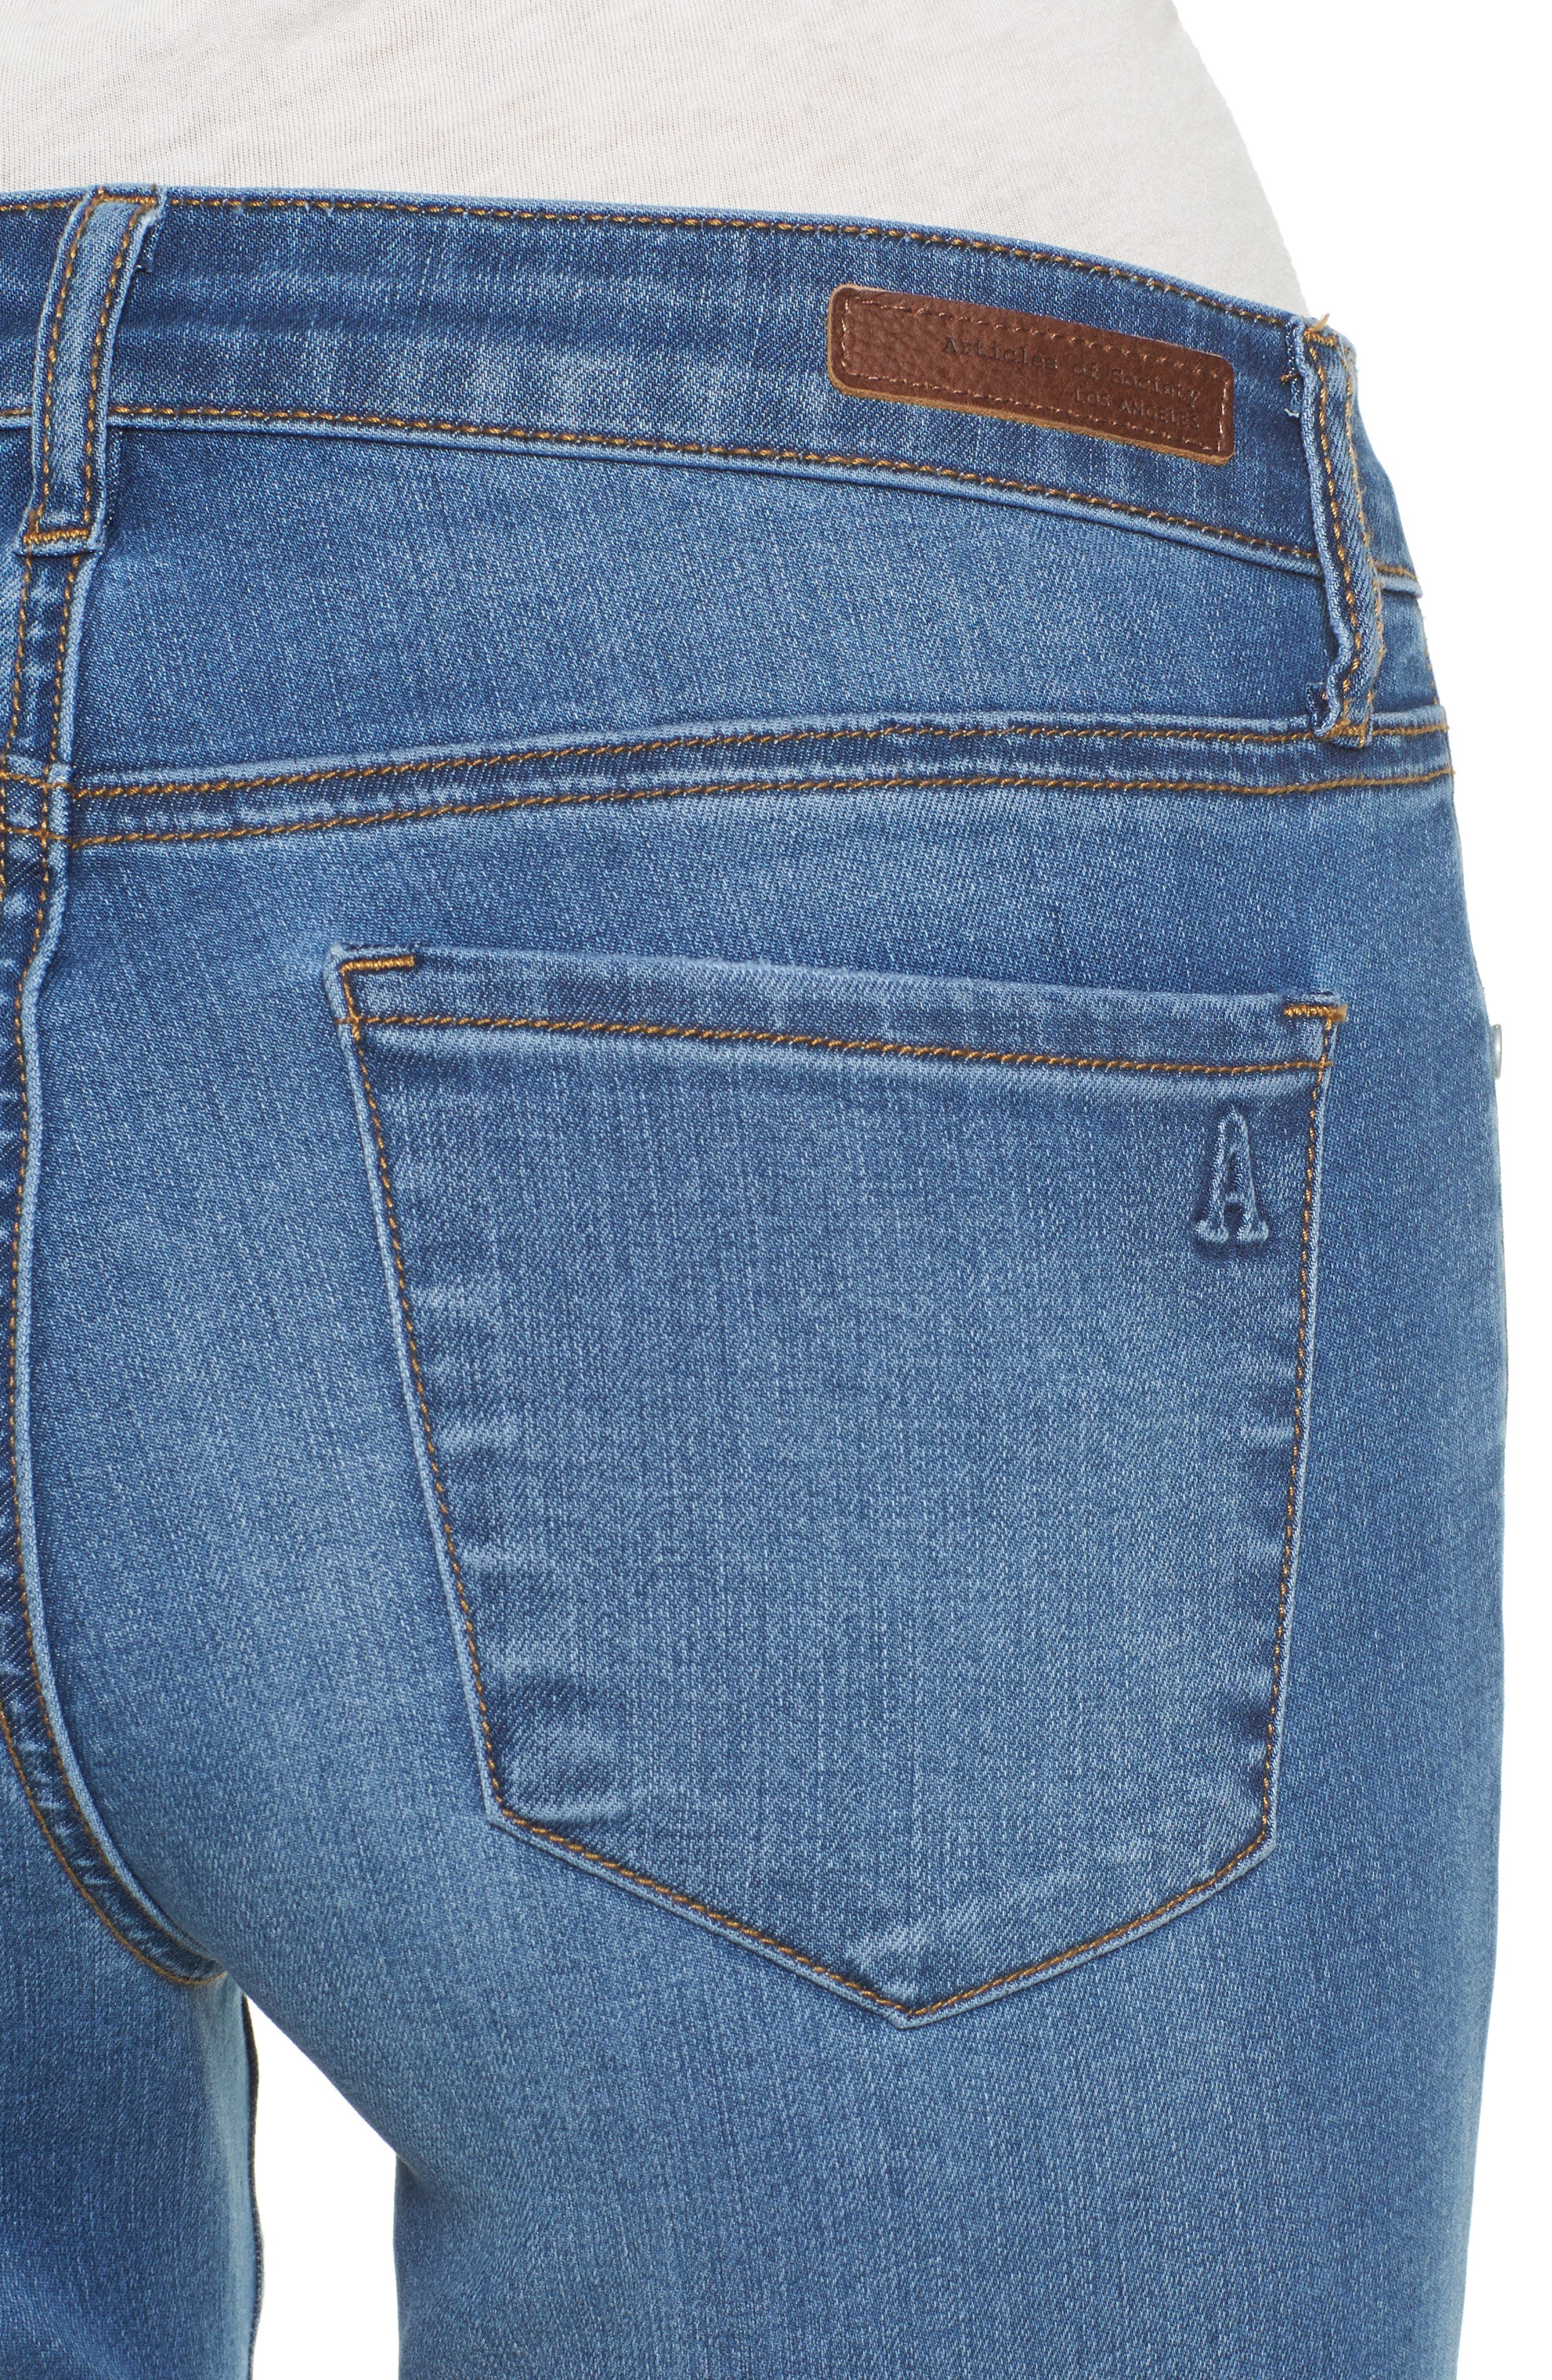 Carly Ankle Skinny Jeans,                             Alternate thumbnail 4, color,                             Sparta